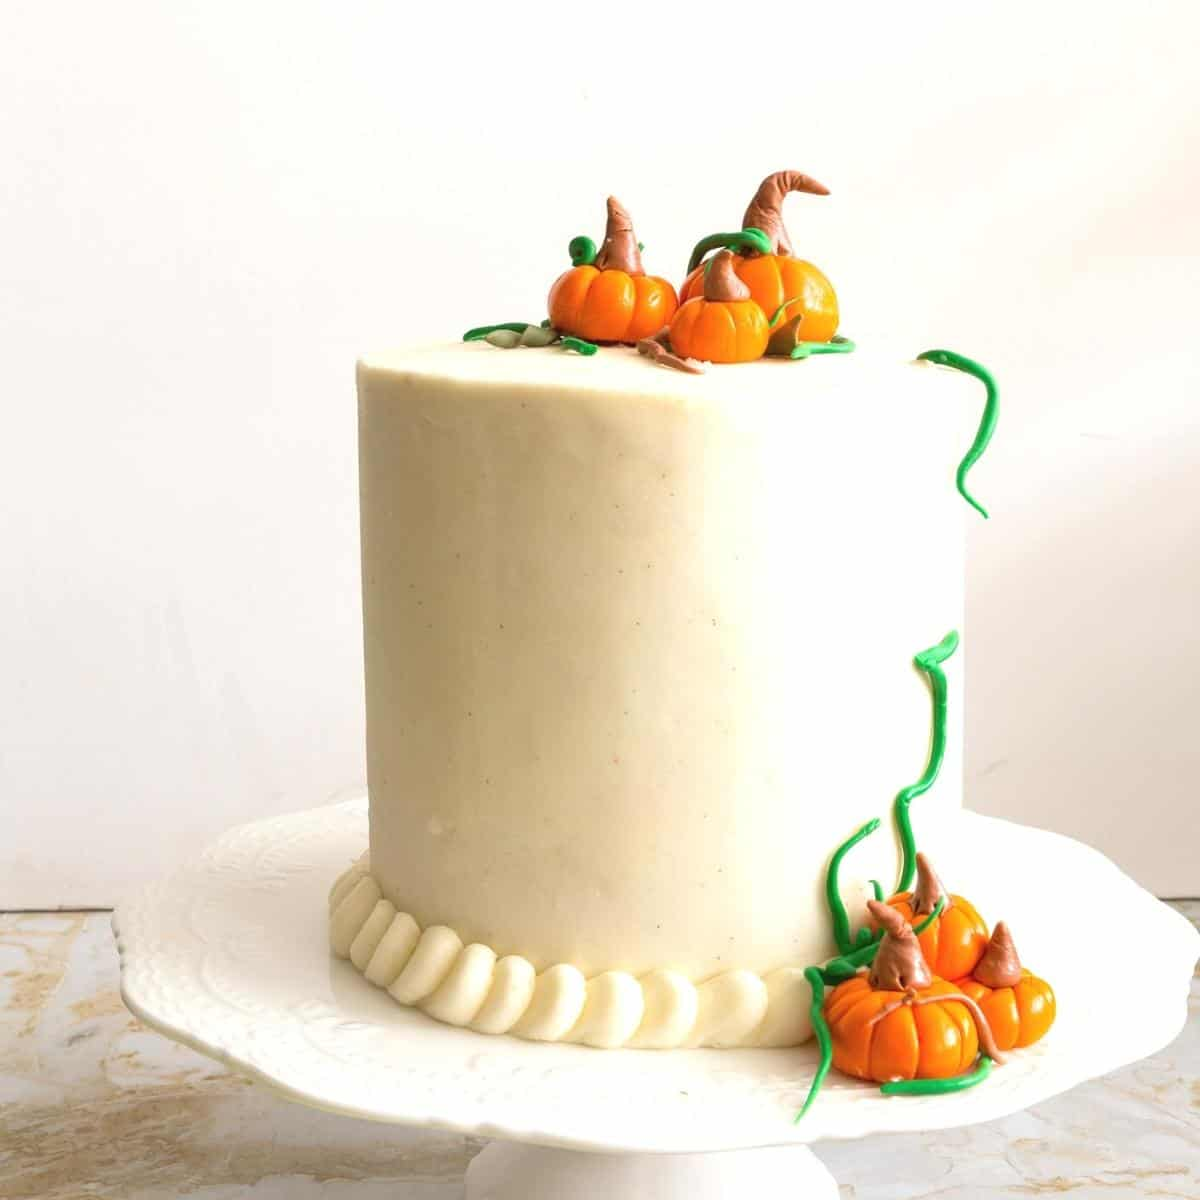 A cake decorated with cream cheese buttercream